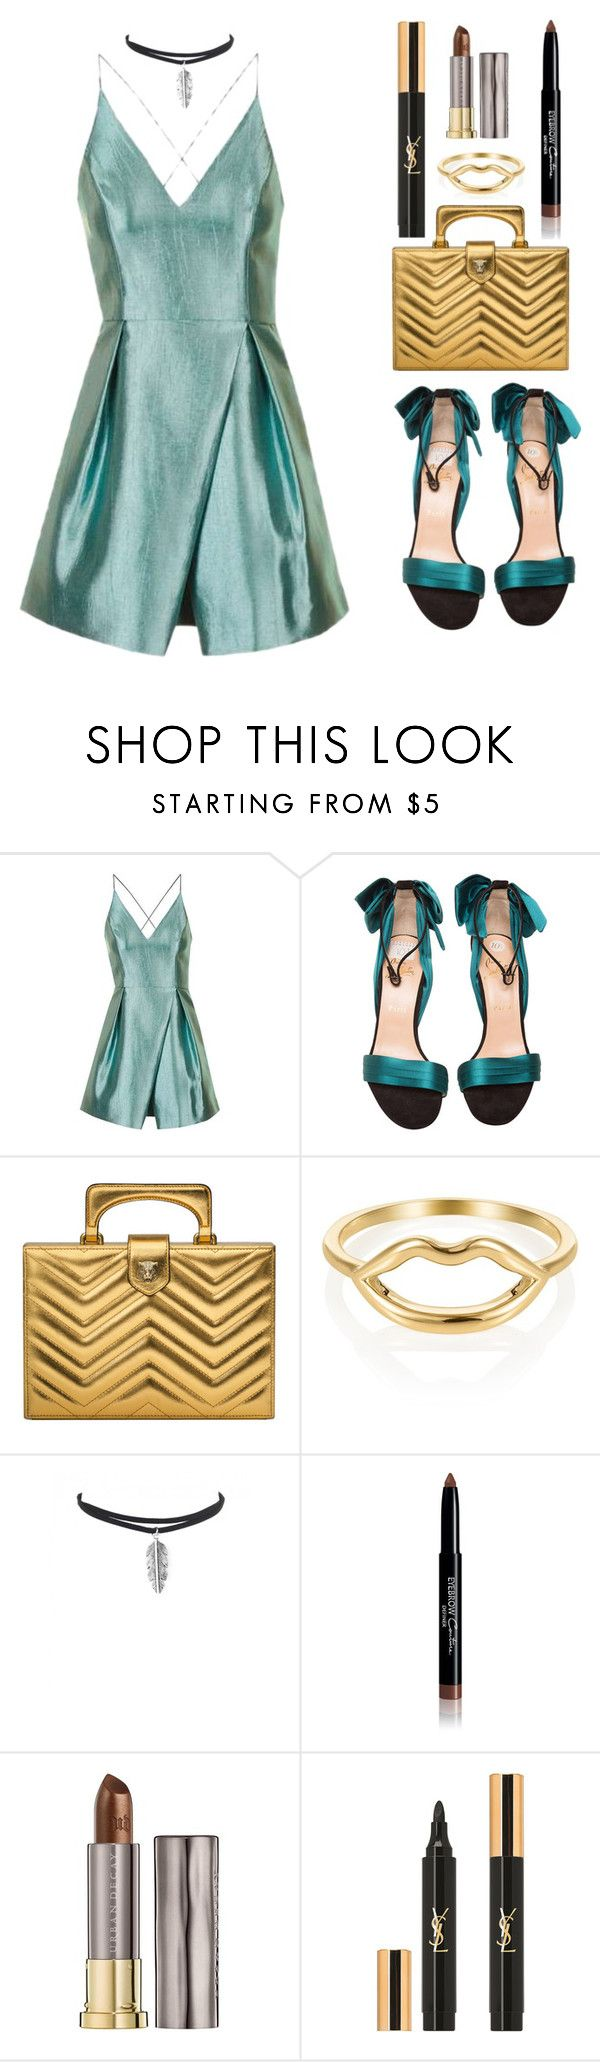 """Me, my self and I"" by steviepumpkin ❤ liked on Polyvore featuring Topshop, Christian Louboutin, Gucci, Givenchy, Urban Decay and Yves Saint Laurent"